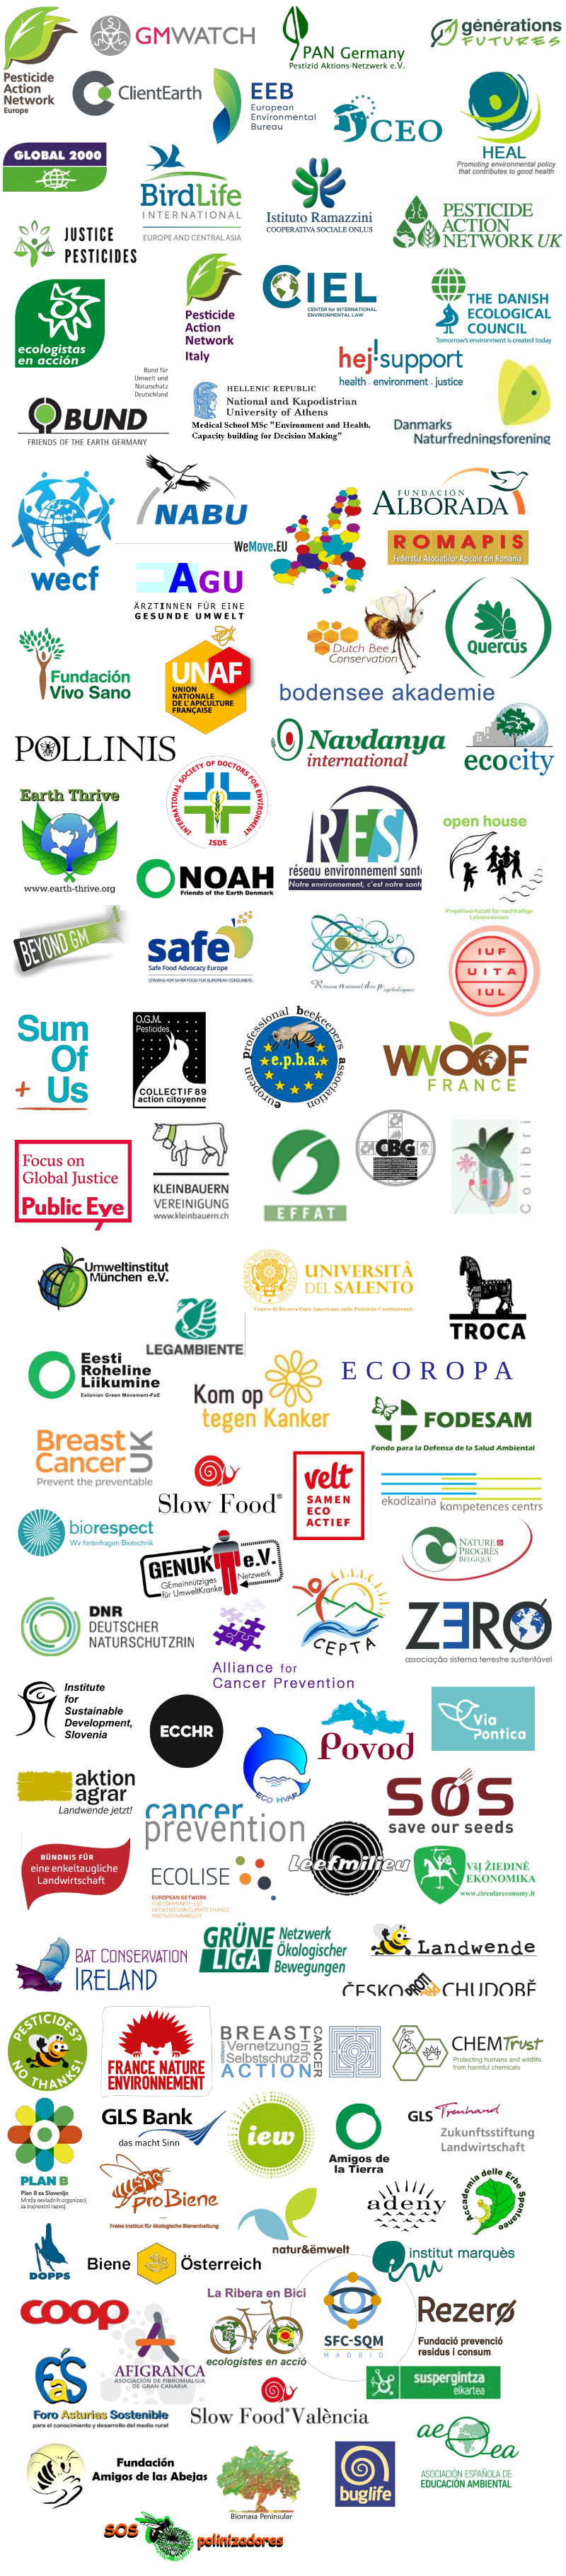 new manifesto, European coalition, Citizens for Science in Pesticide Regulation, conflicts of interest, pesticides regulatory systemrisk management system